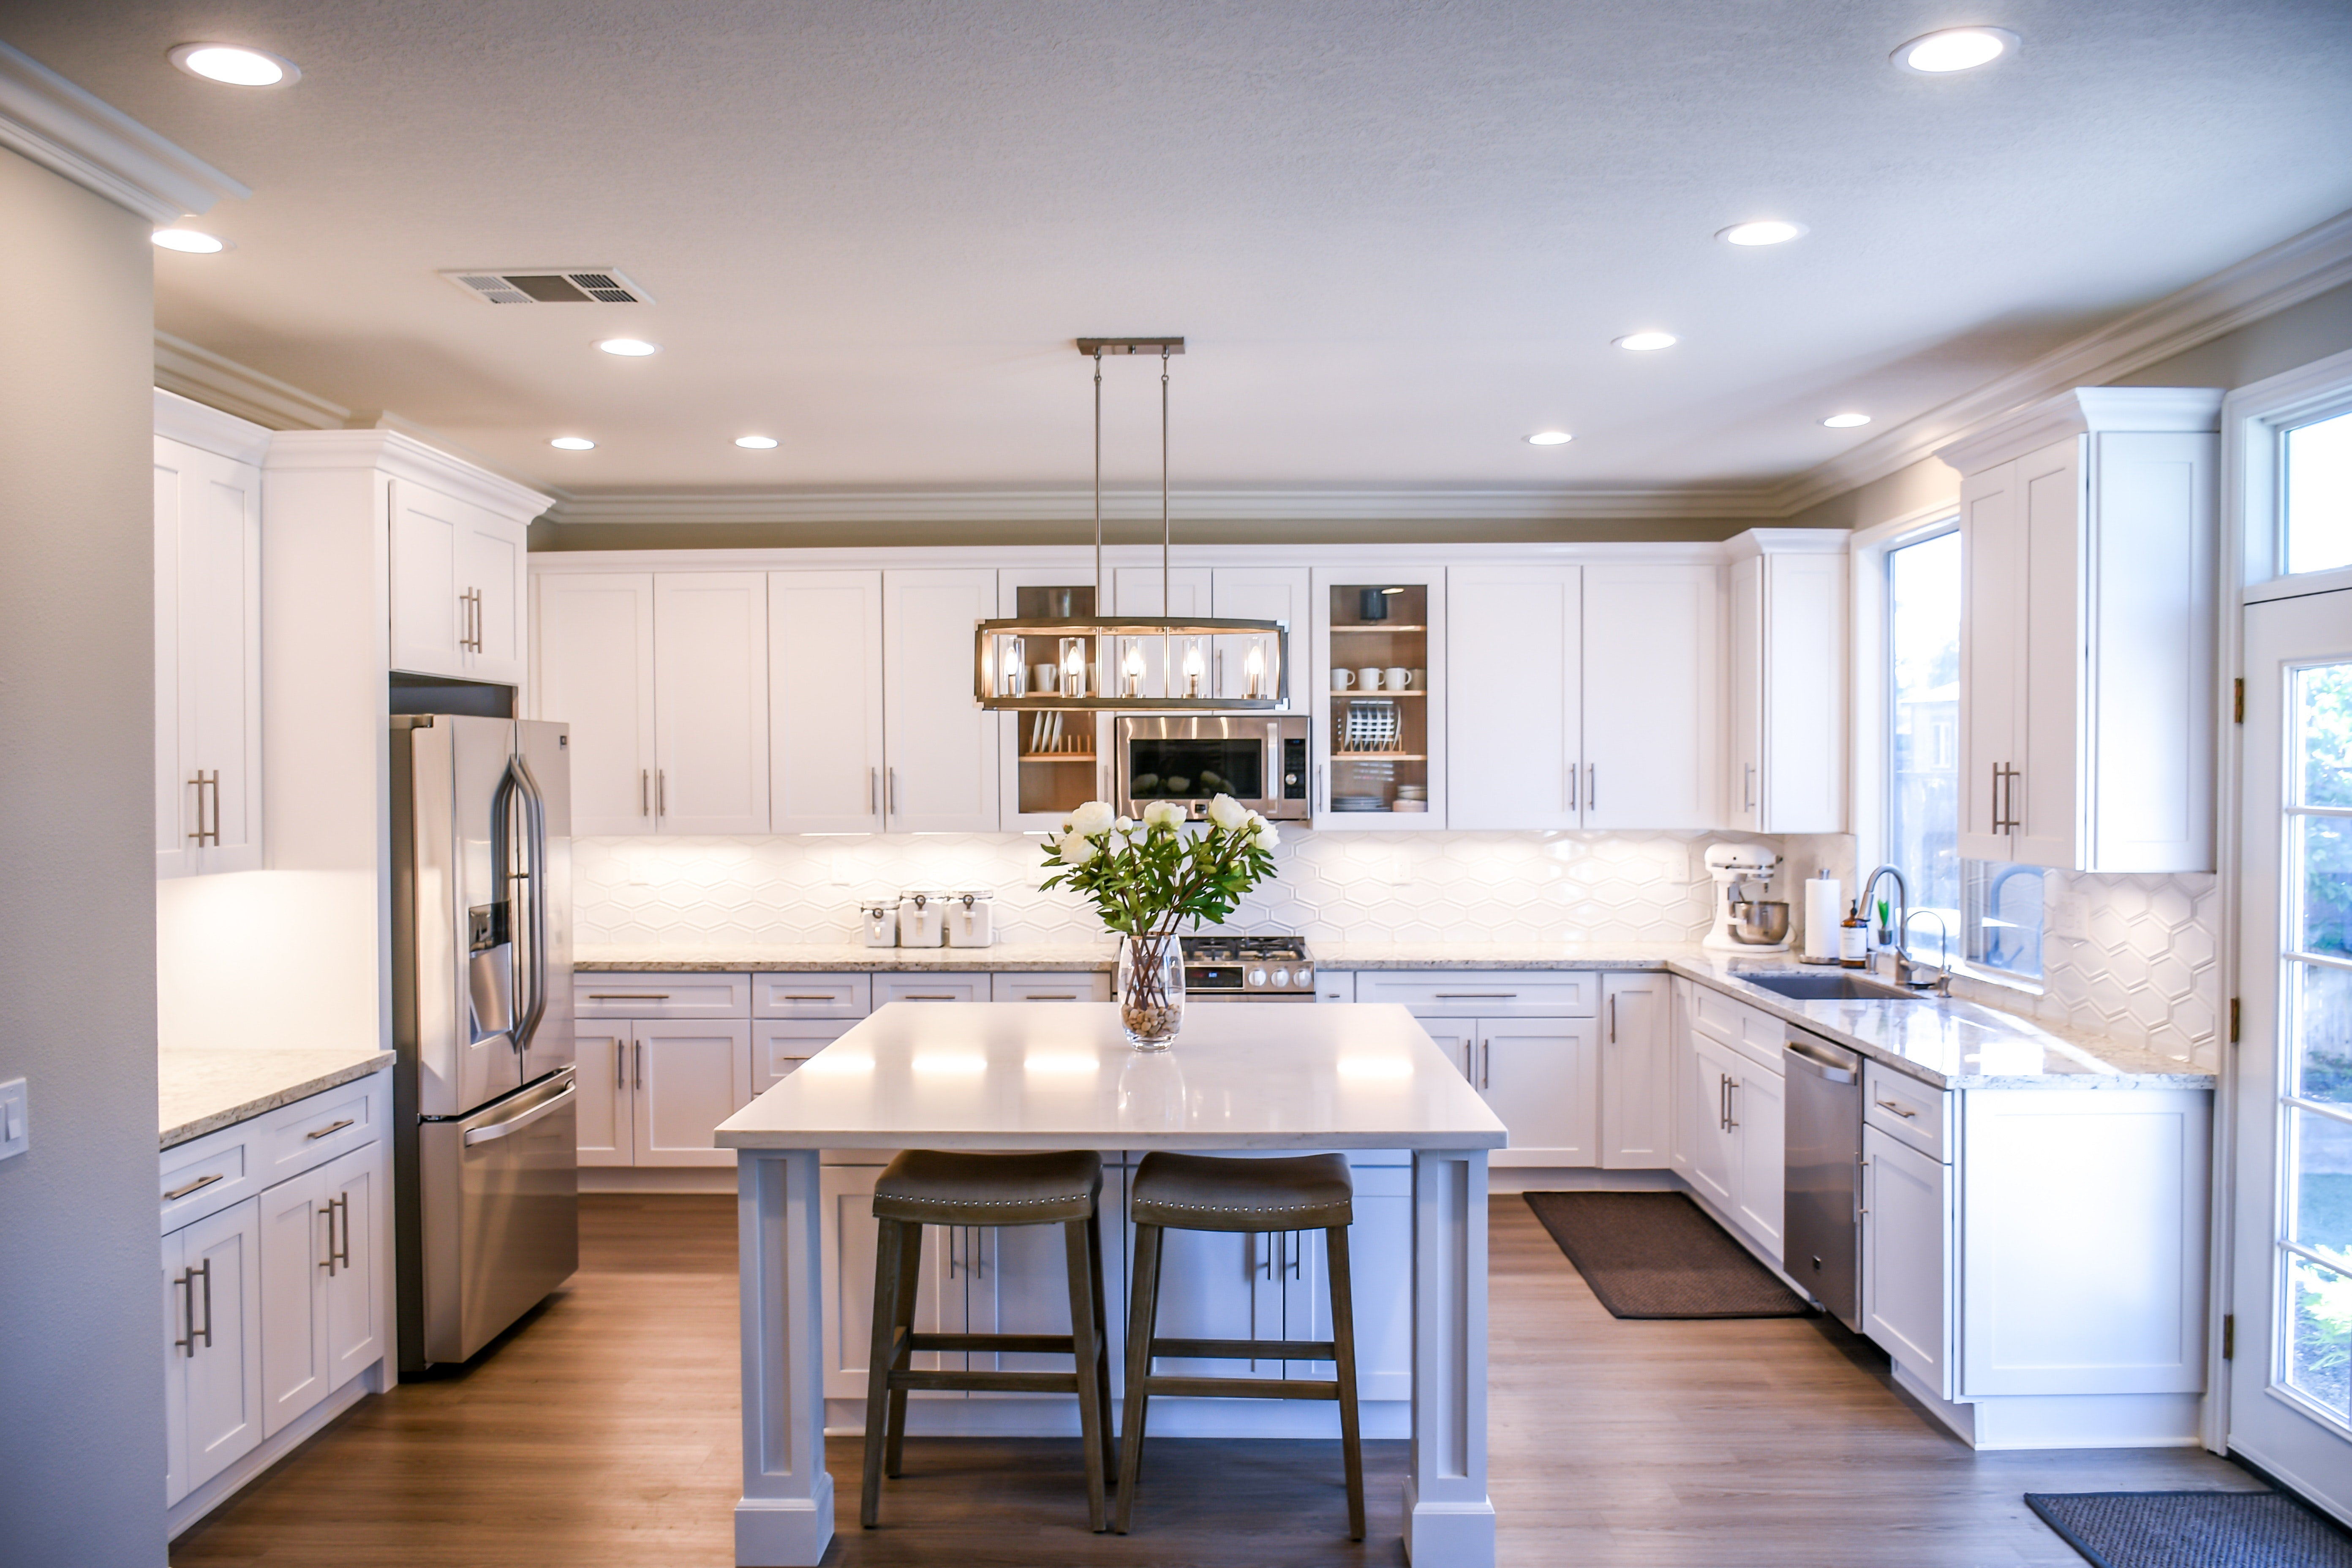 Homes for familes Jupiter and palm beach gardens